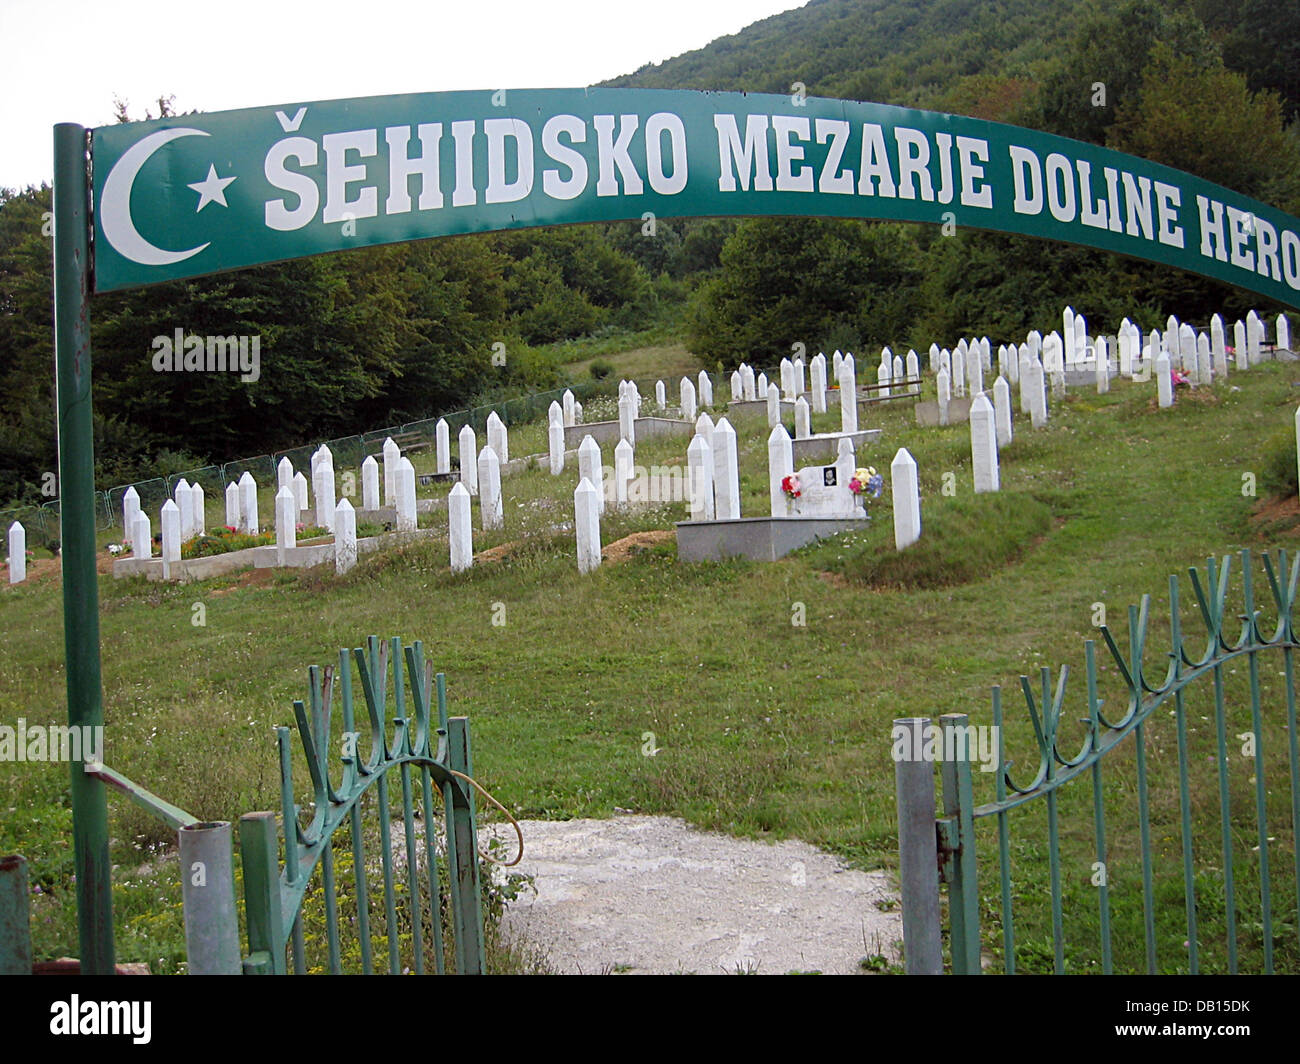 The picture shows a cemetery for Muslim victims of the Balkan War near Bihac, Bosnia Hercegovina, 25 August 2007. - Stock Image